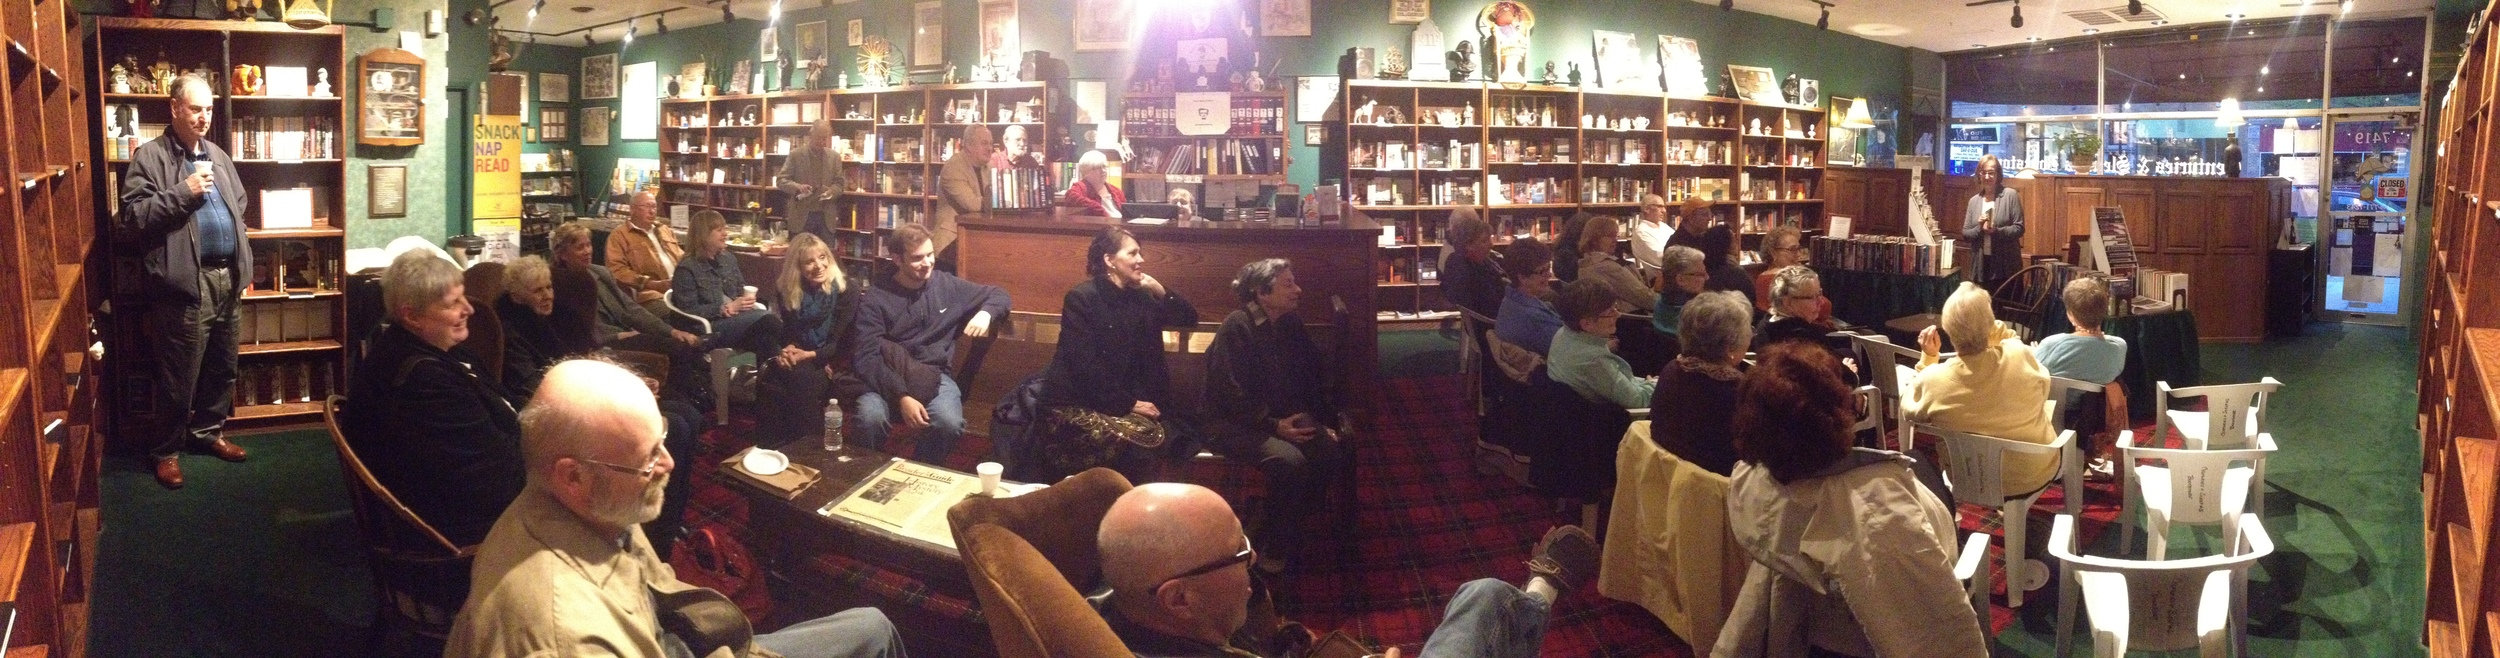 Chicago Book Launch at Centuries and Sleuths, May 16, 2014